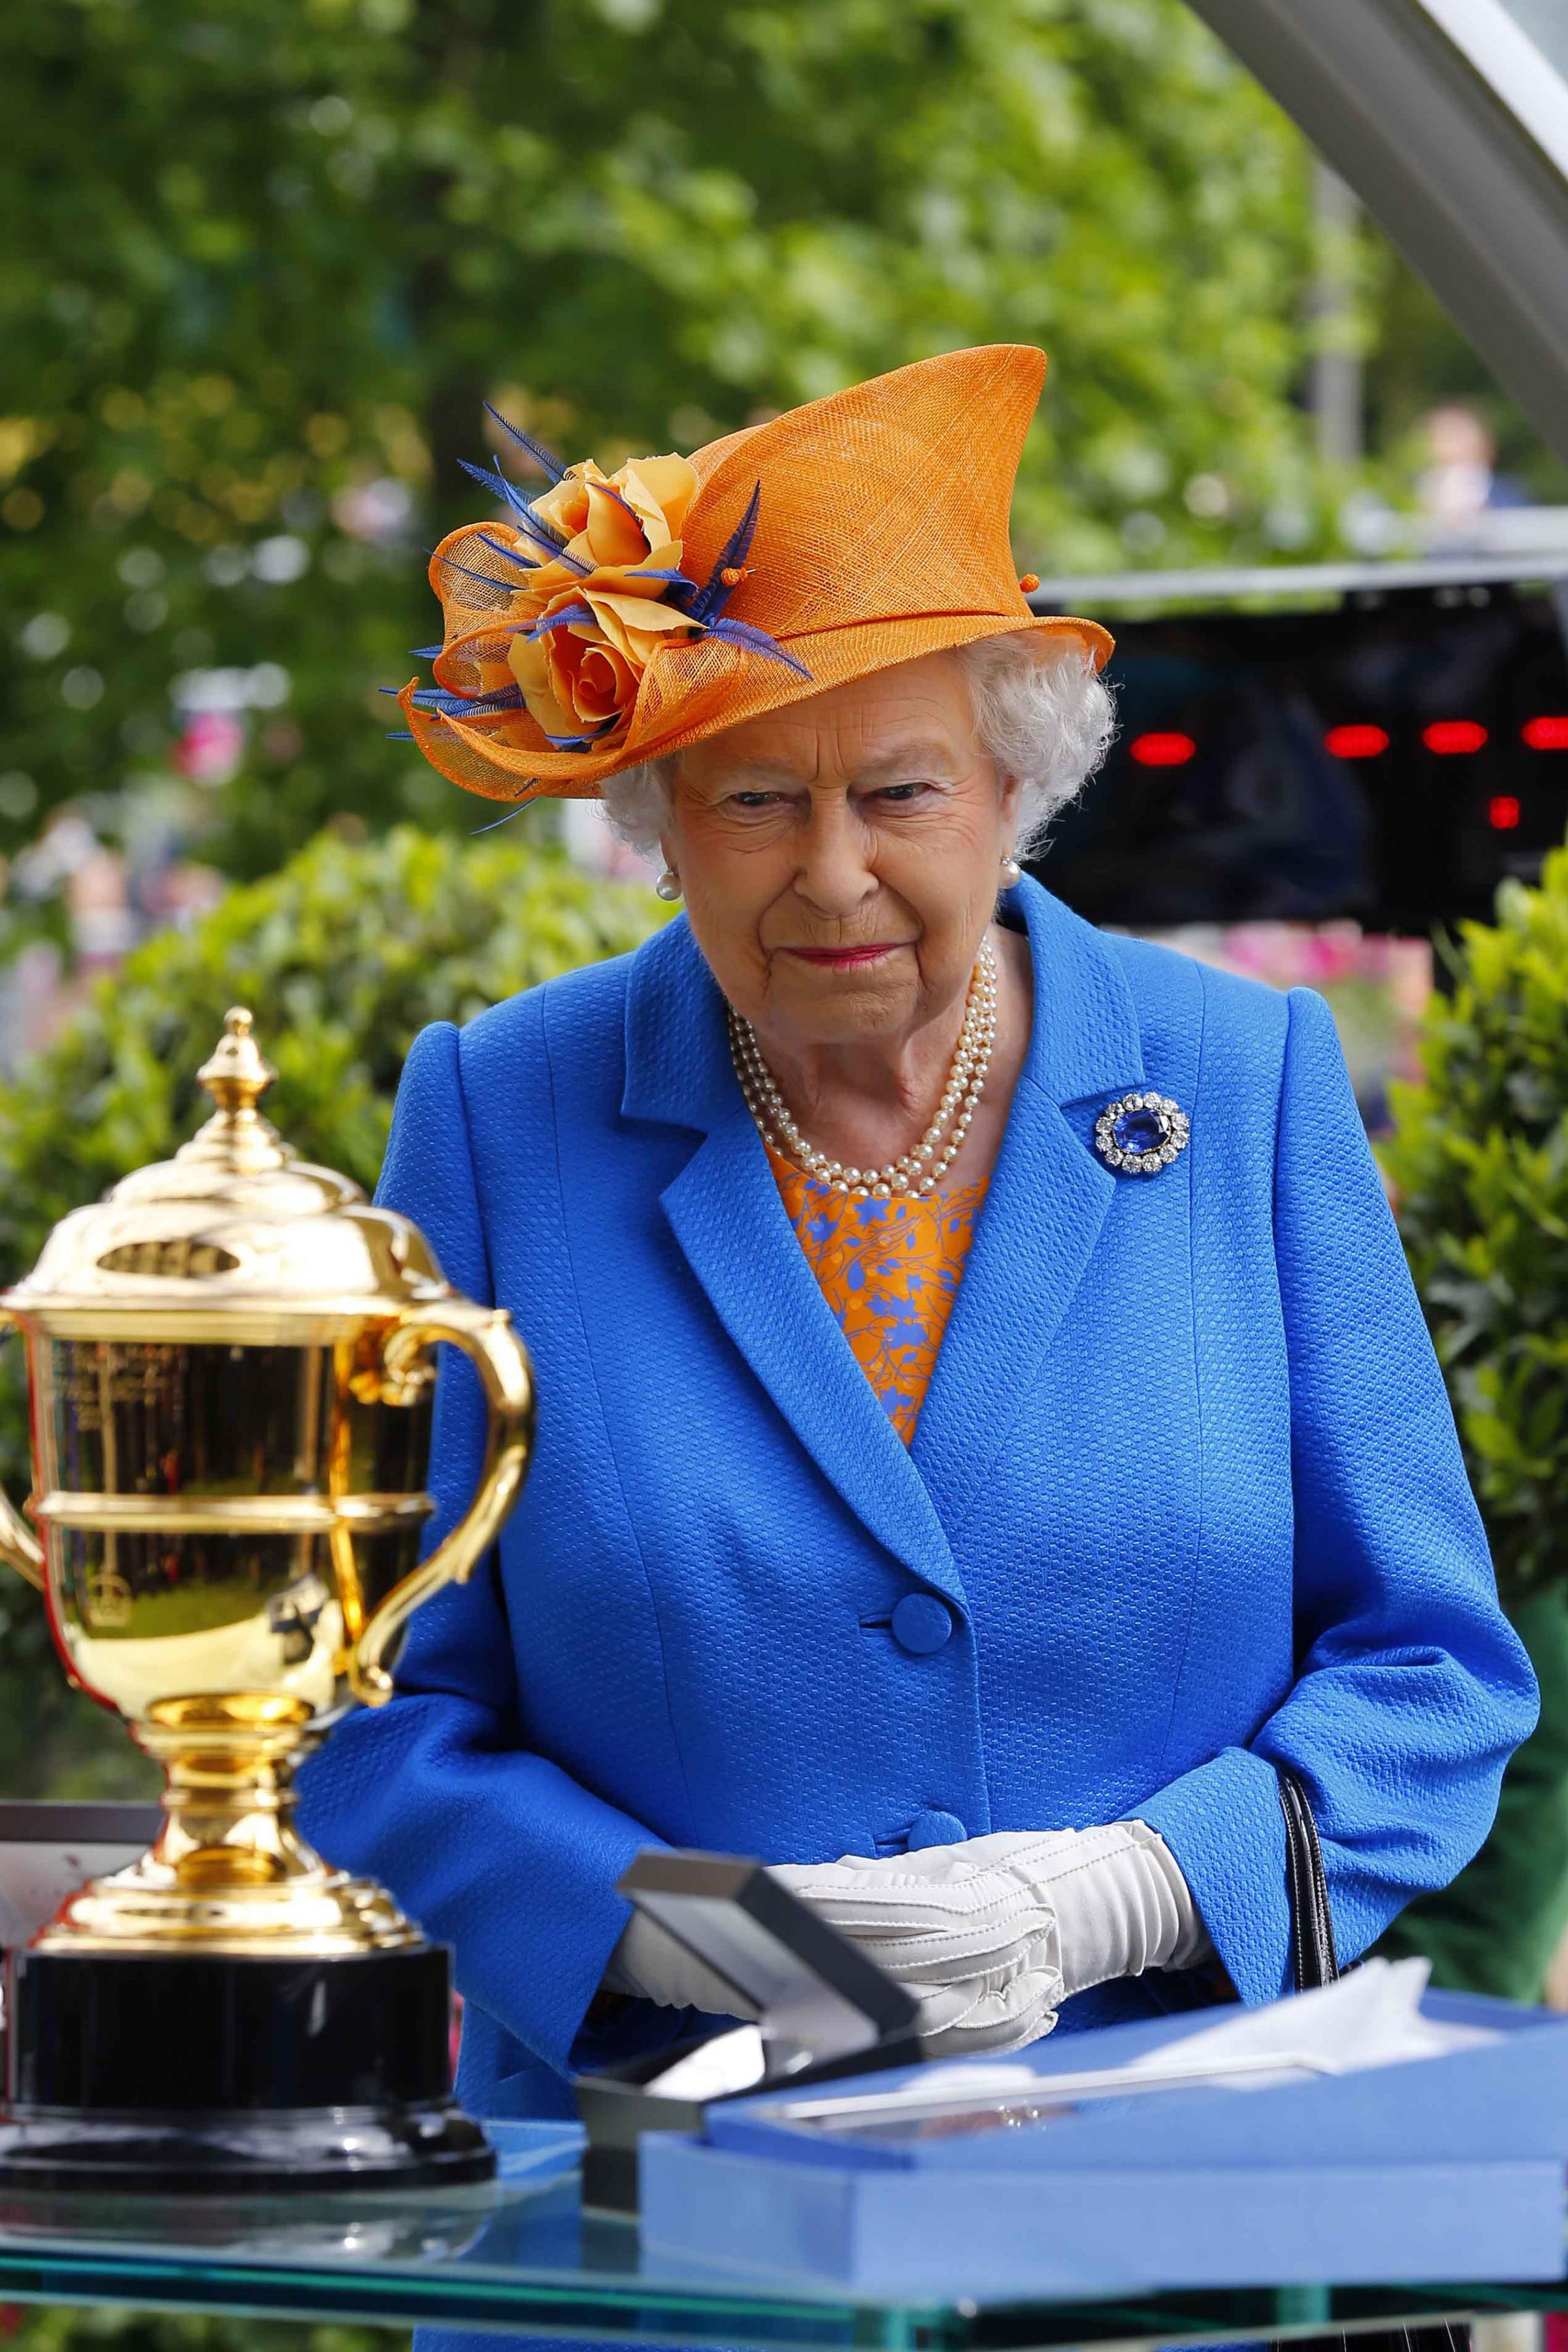 The Queen landed a Royal Ascot winner with Dartmouth. Picture: Sue Orpwood.